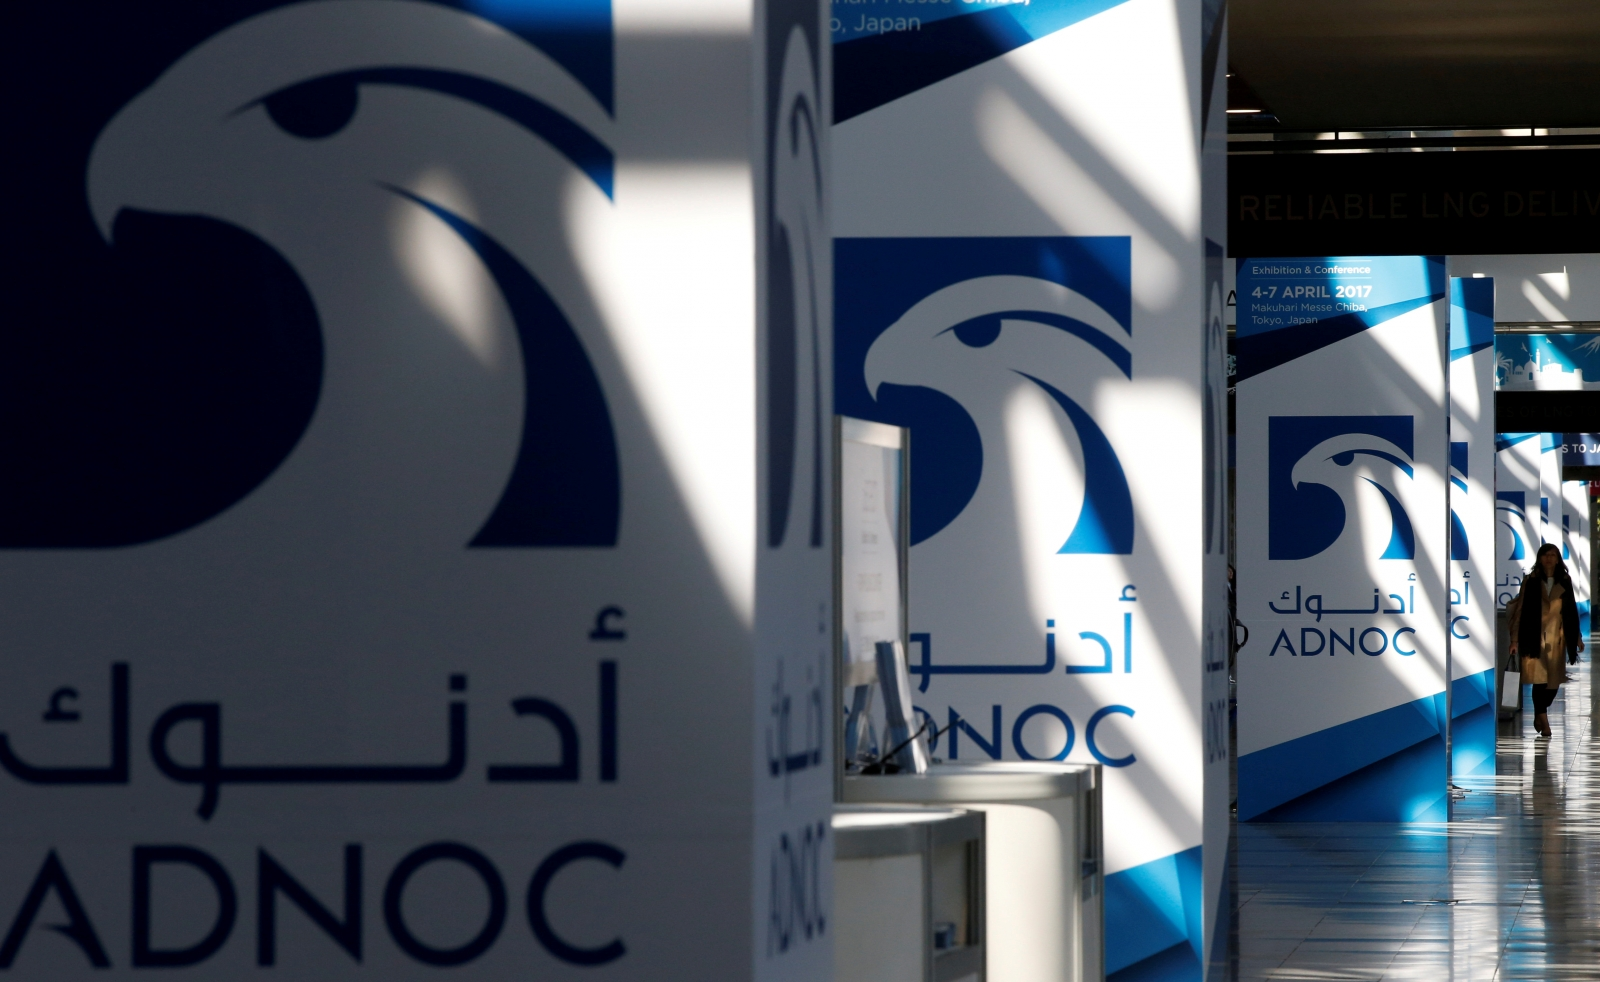 ADNOC Plans IPO of Retail Unit at $14 Billion Value